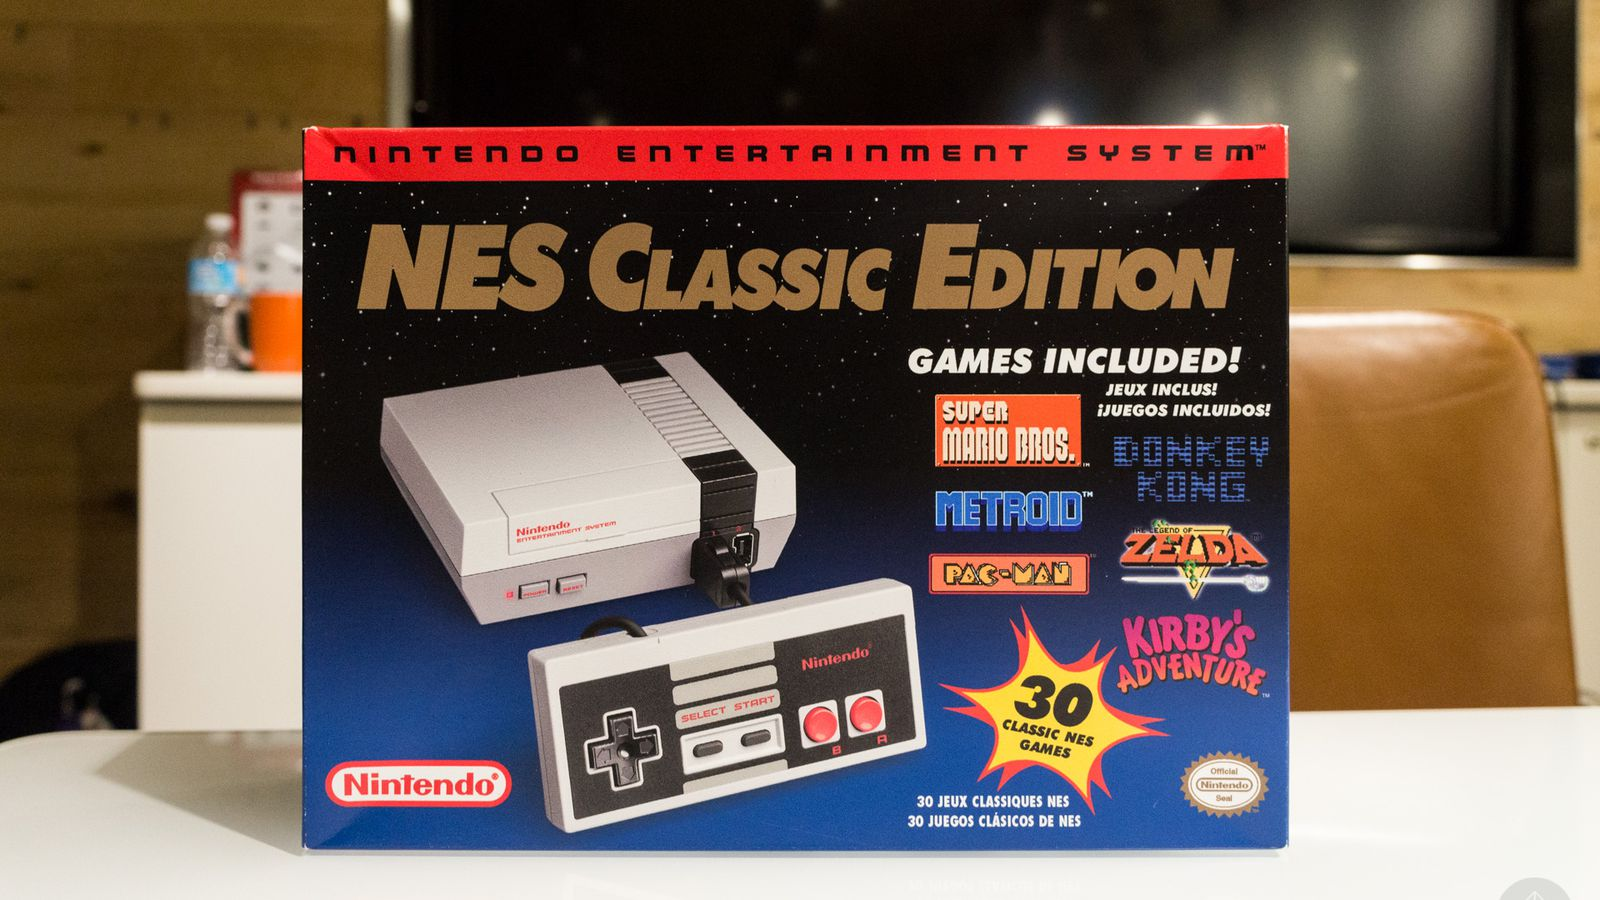 Nintendo's NES Classic strategy threatens to hurt the rest of its business